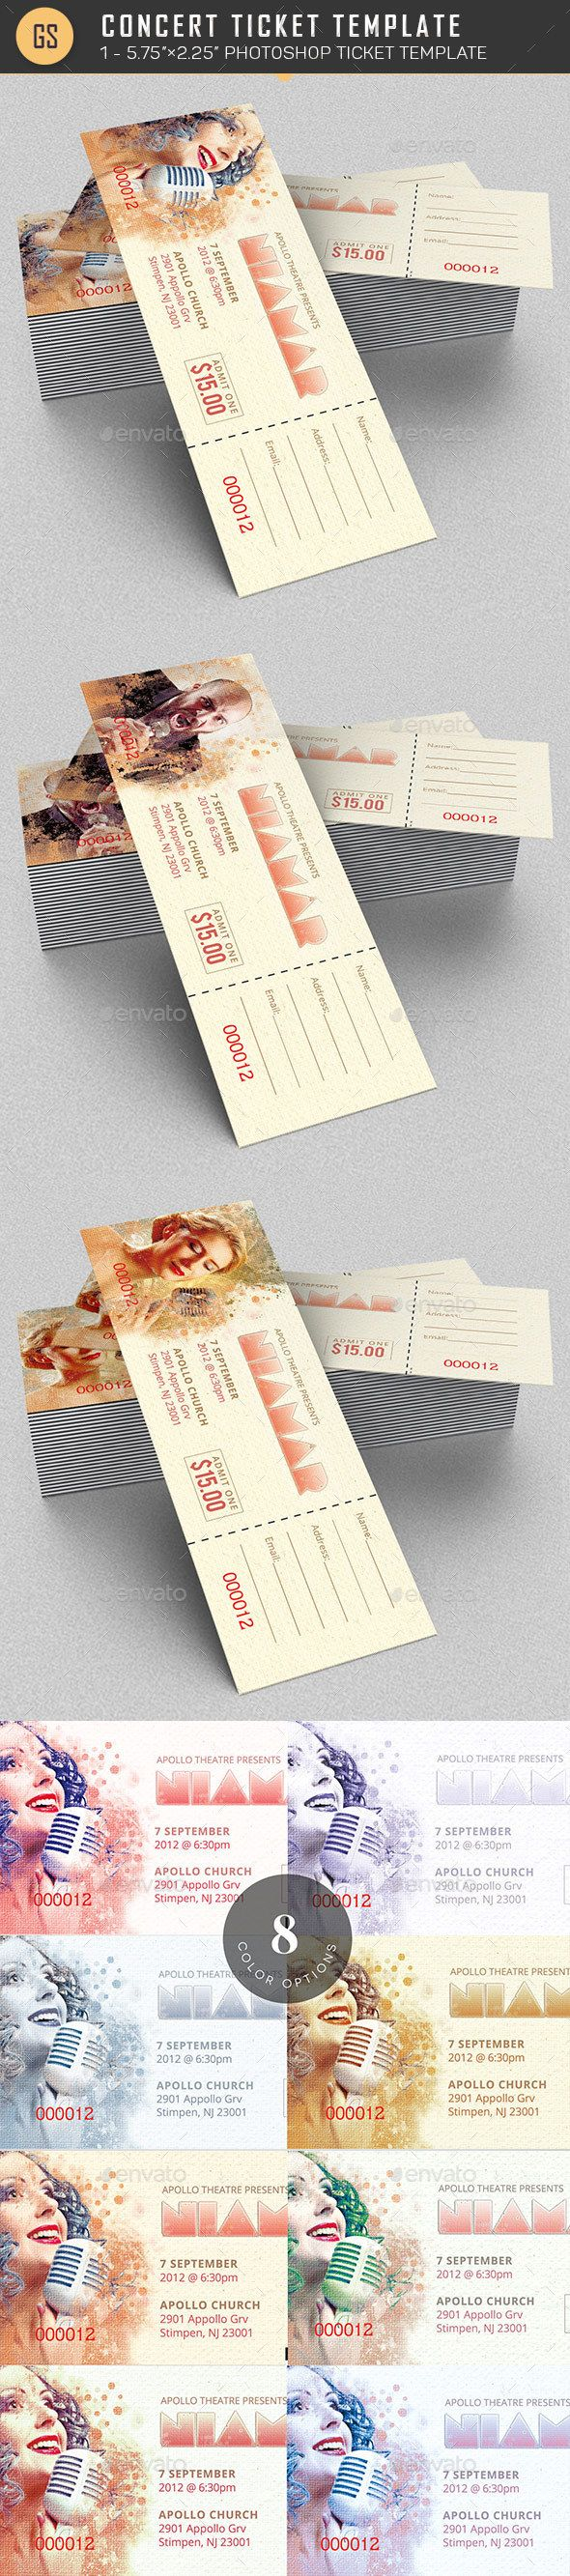 Concert Ticket Template  Concert Ticket Template Ticket Template